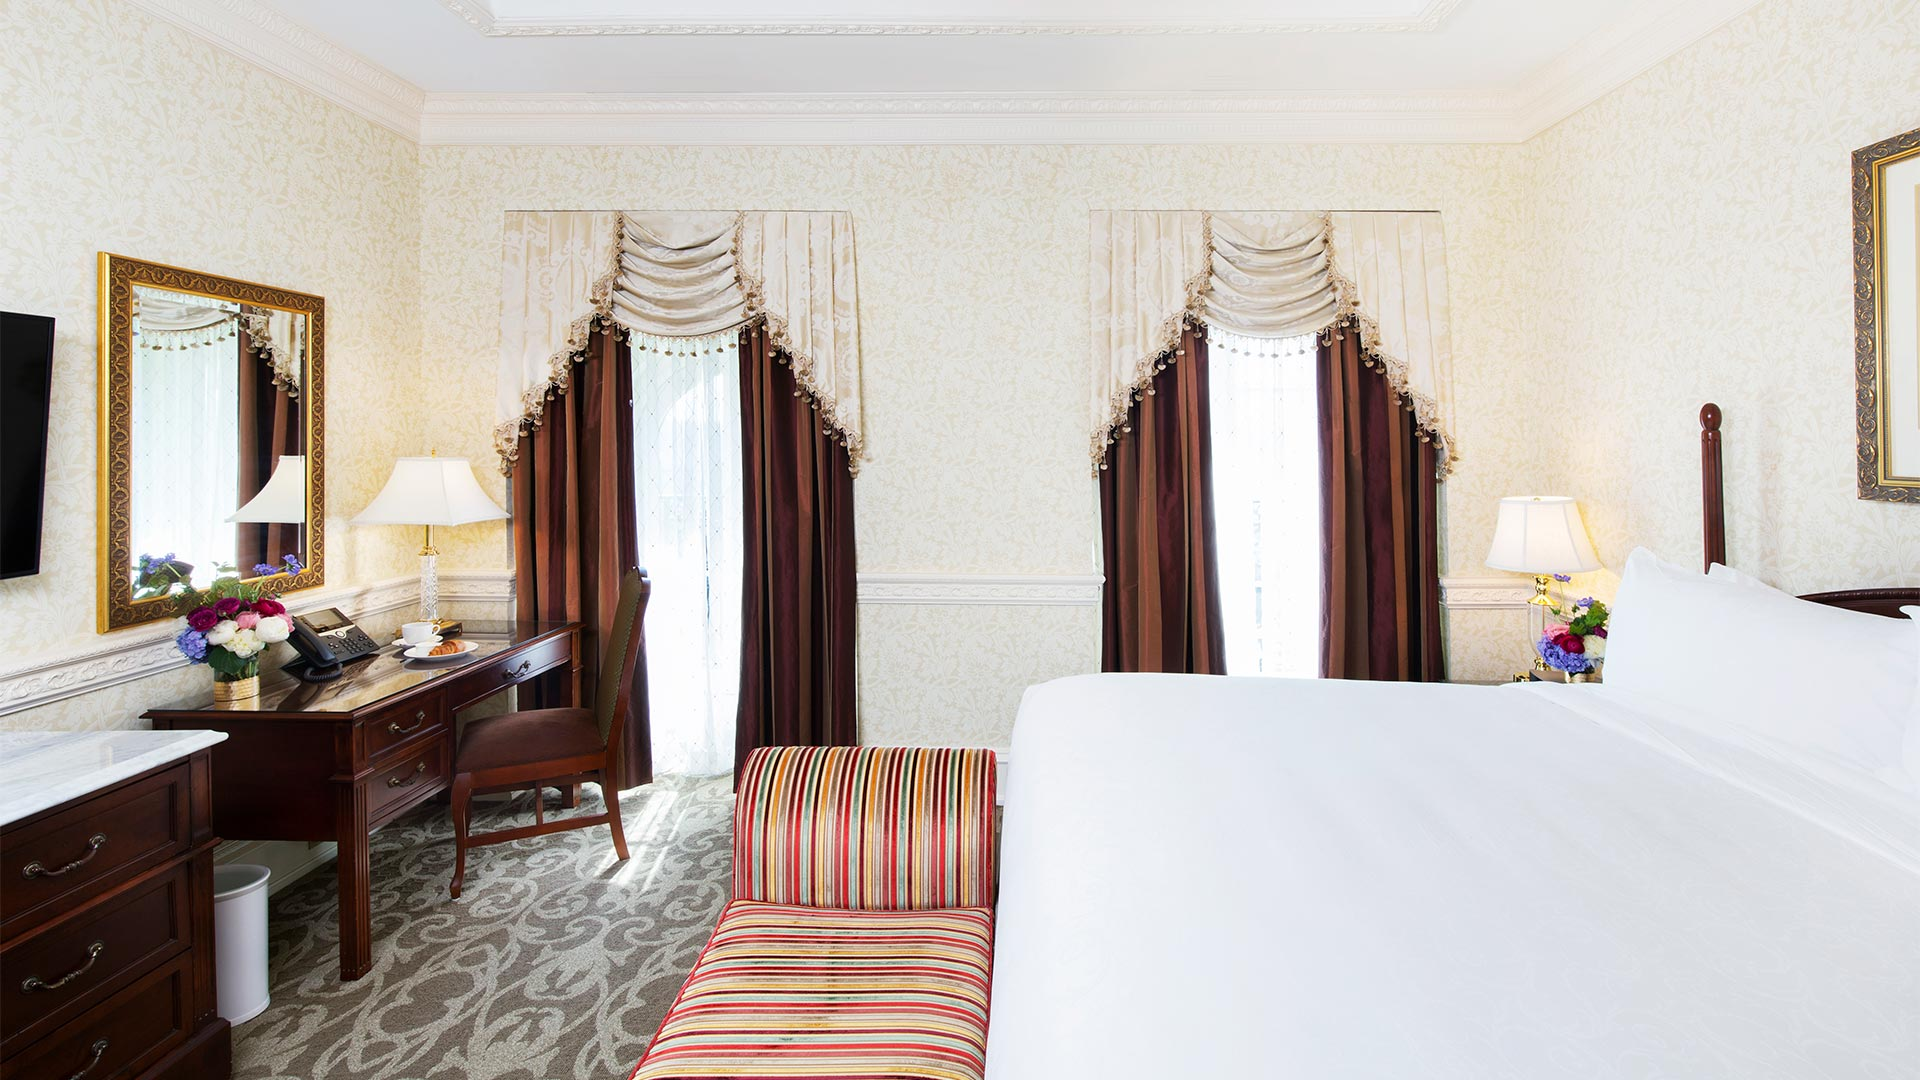 interior shot of the bedroom area. There is a king bed with a desk, TV and sitting bench at the foot of the bed. Two windows give views of the resort.